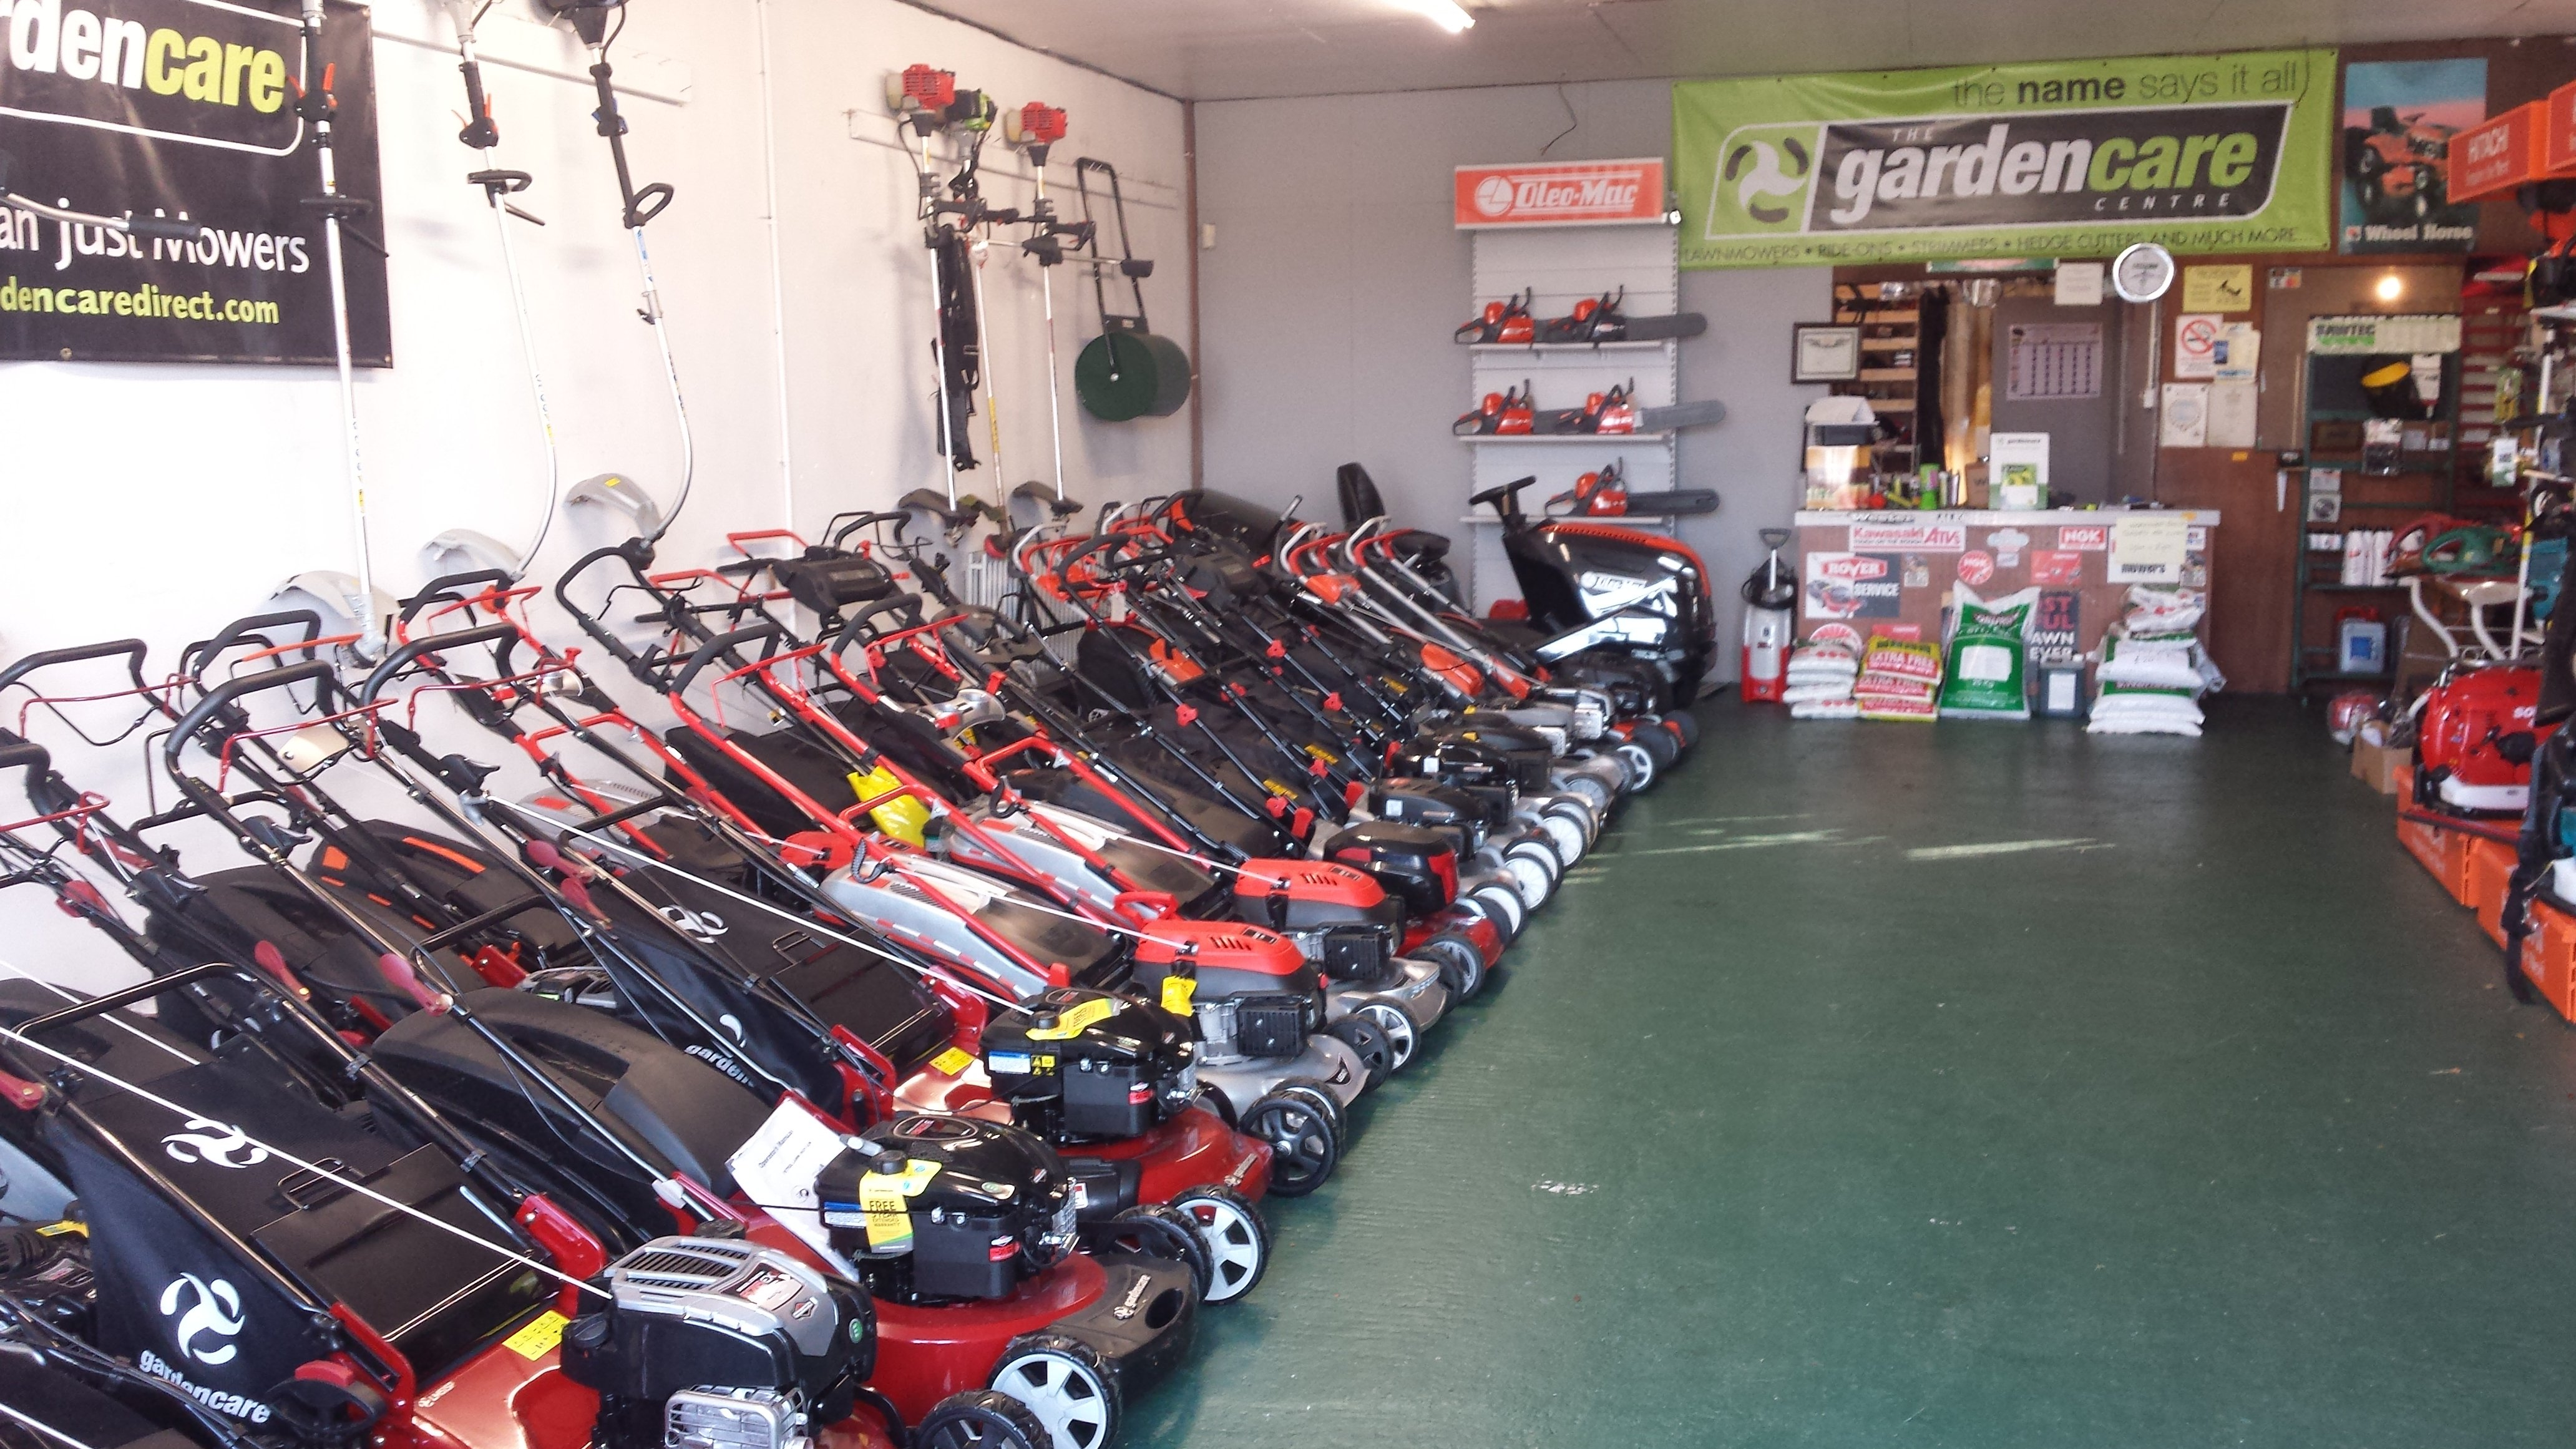 lawnmowers in the shop